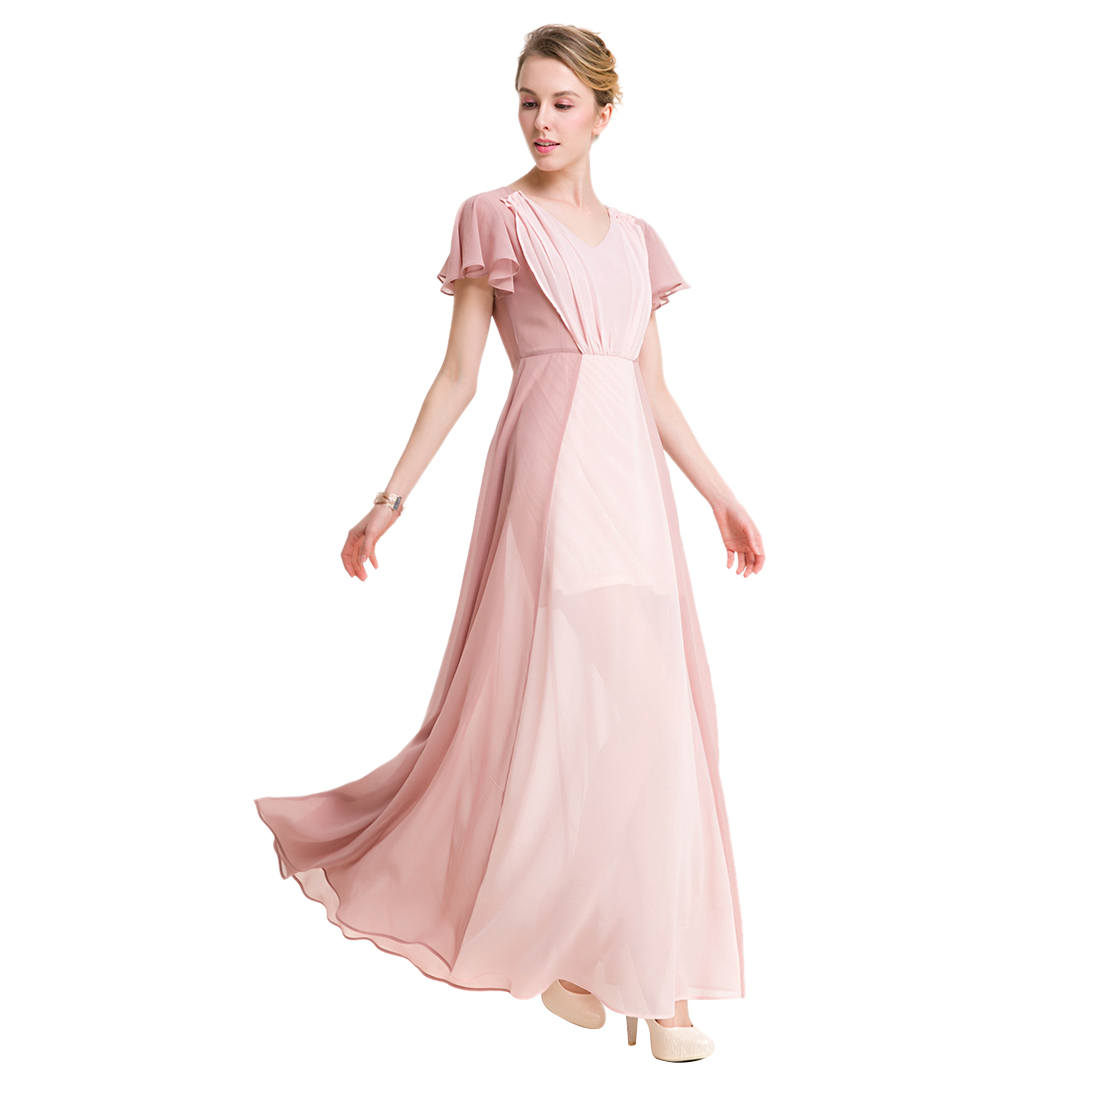 TFGS Original Design Women Long Chiffon Dress Patchwork Color Petal Sleeve V Neck Pleated Dress Casual